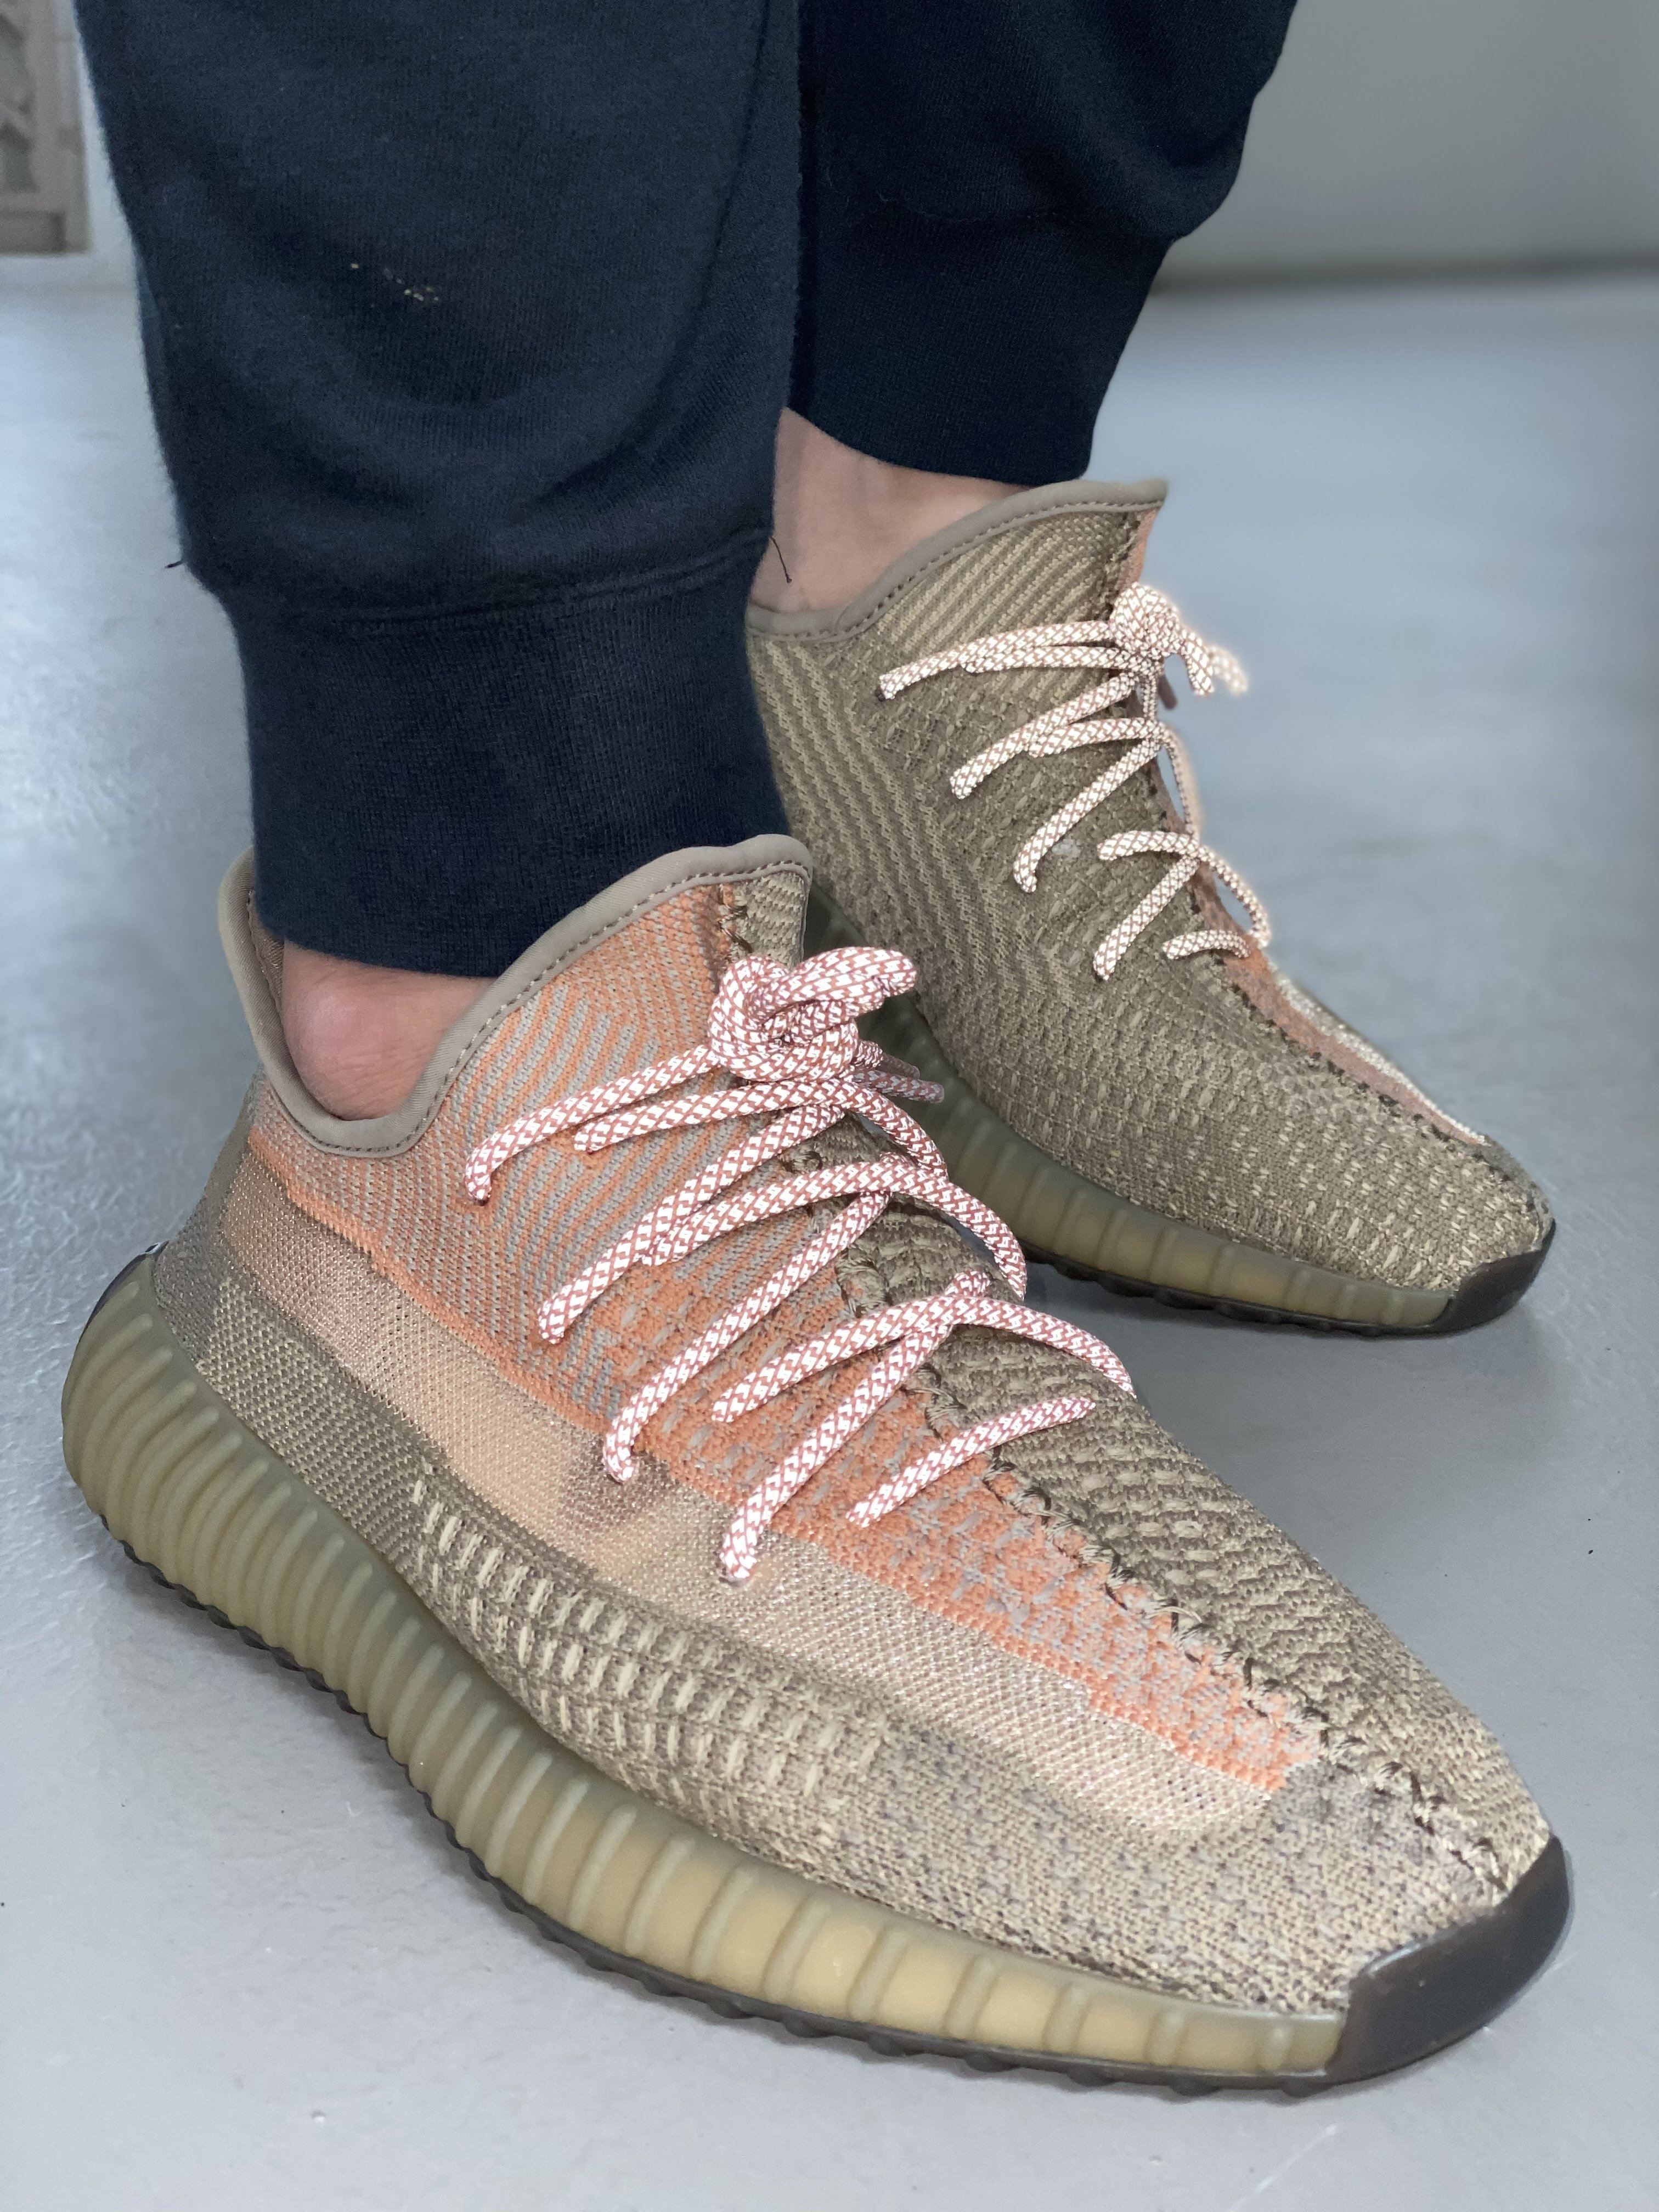 Yeezy Laces 3M Reflective Rope - Static Sand Orange for Yeezy ...